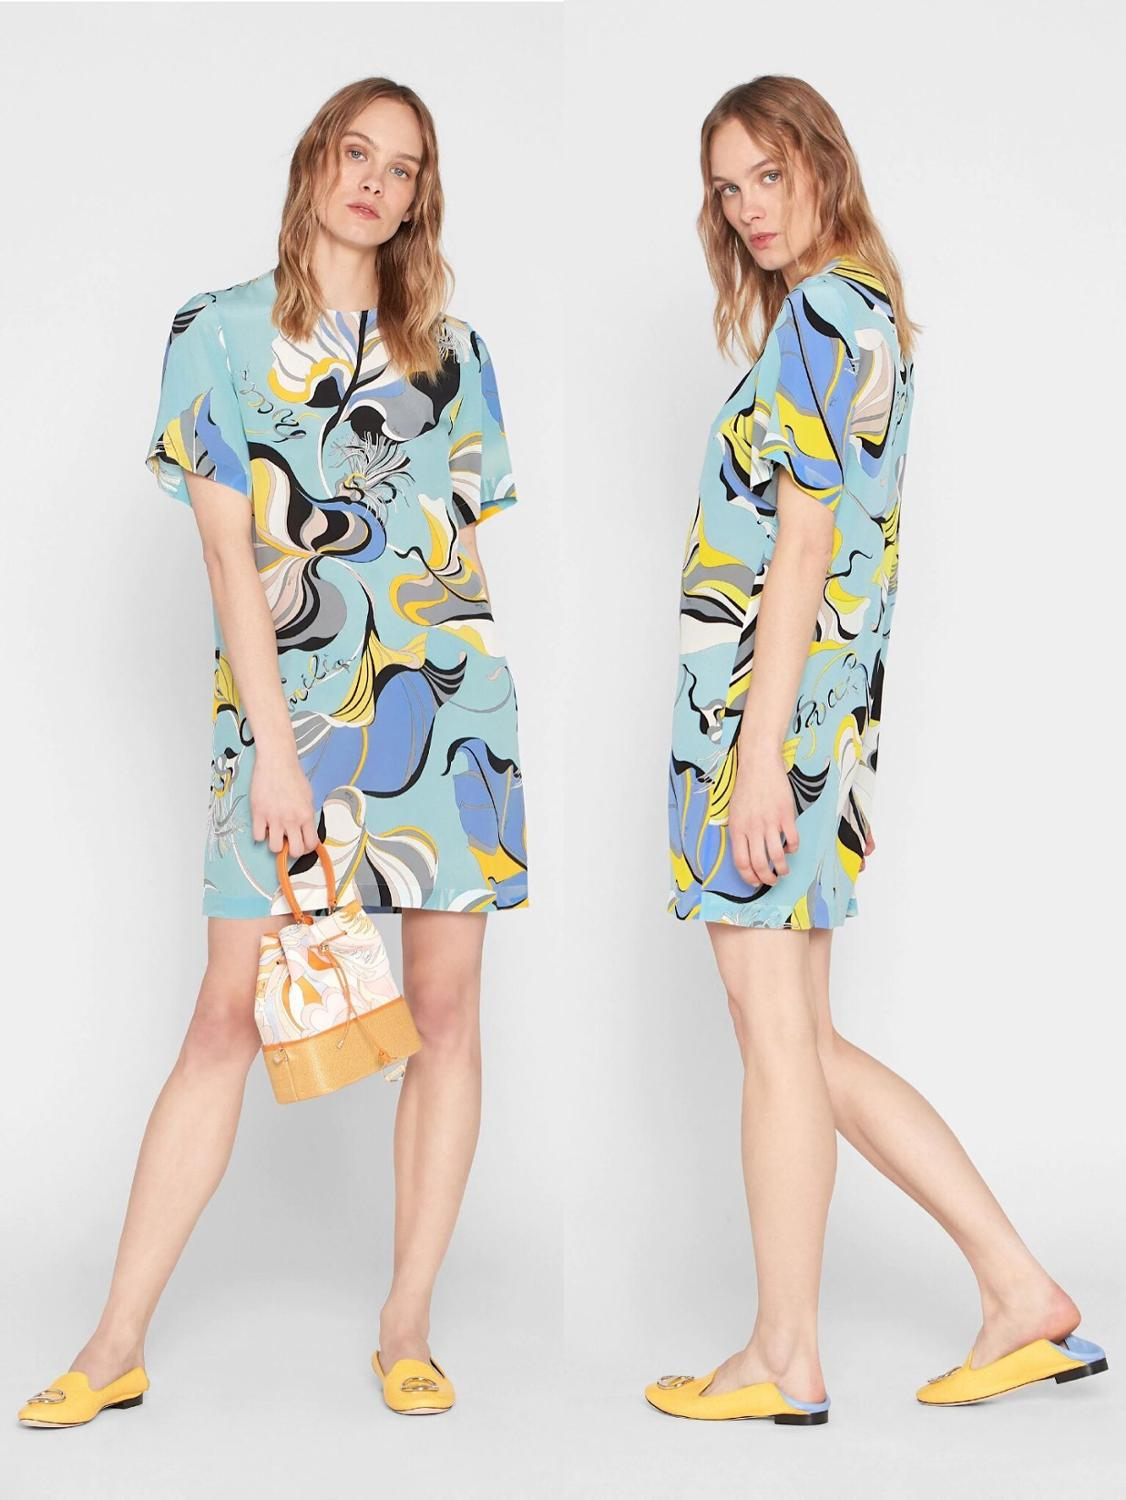 New Fashion Printed Short Sleeve silk jersey Colour impact Elastic Knitted Slim Dress for Women